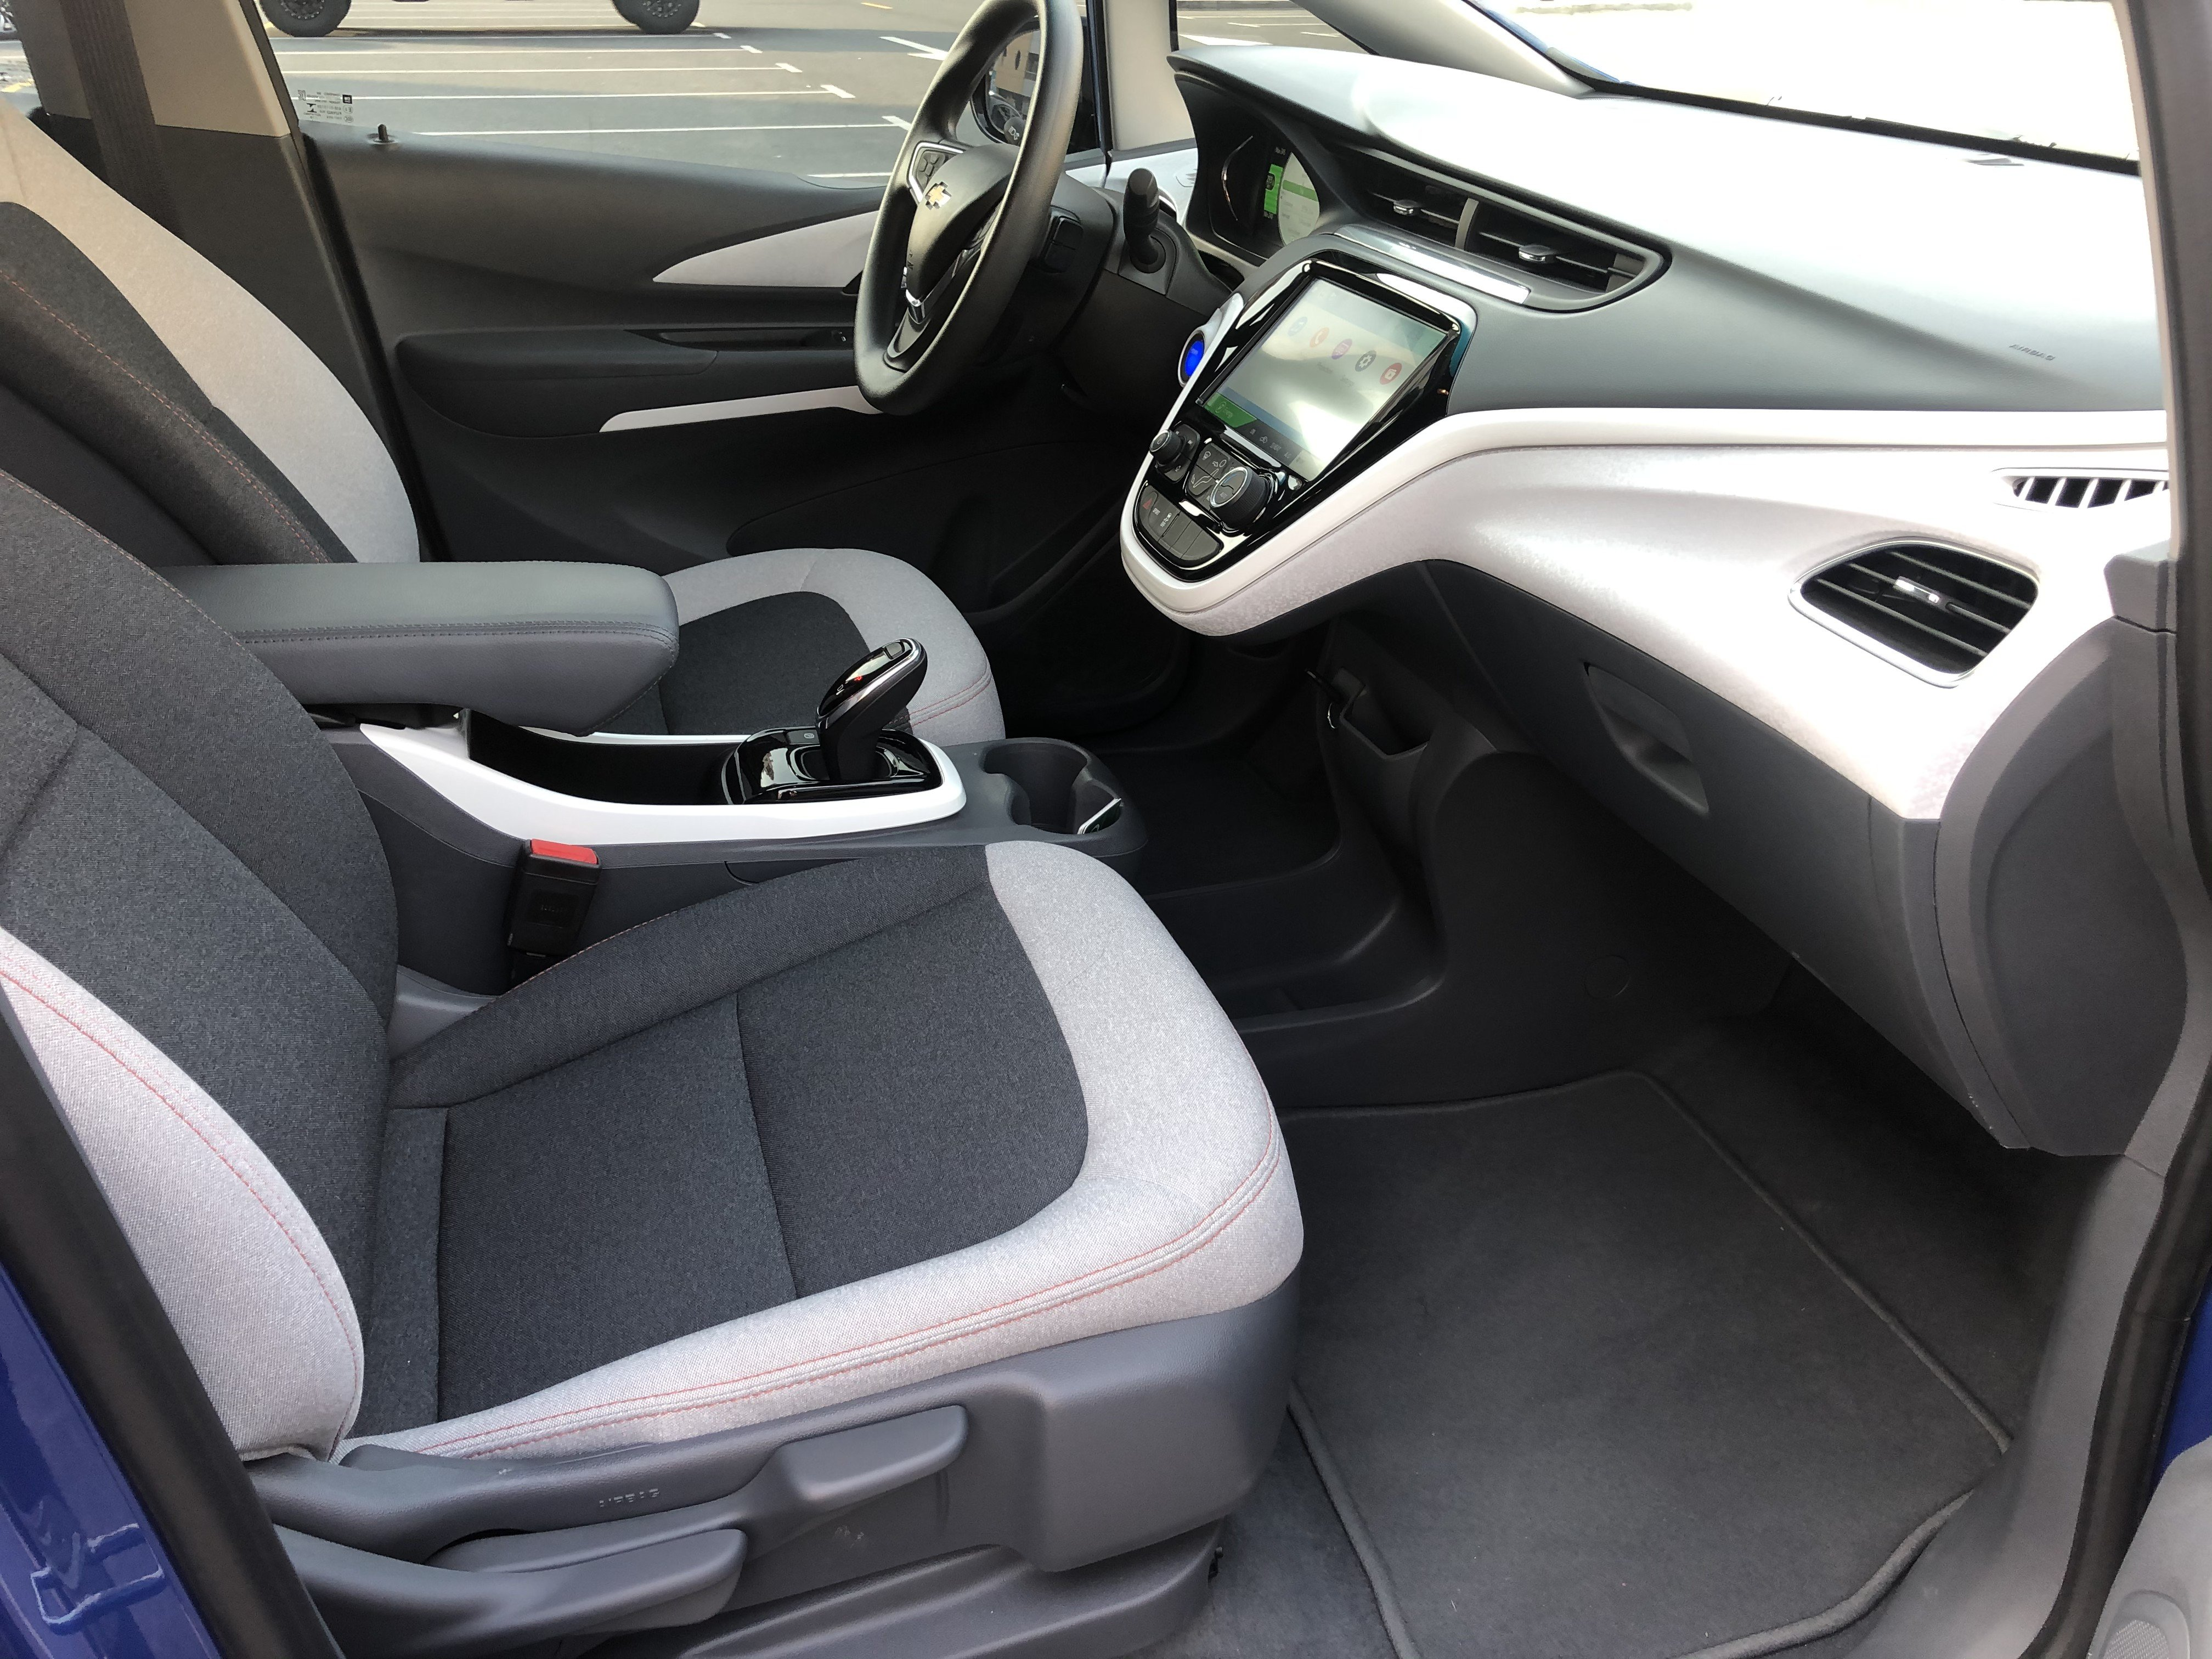 2019 CHEVROLET BOLT EV Interior leg room